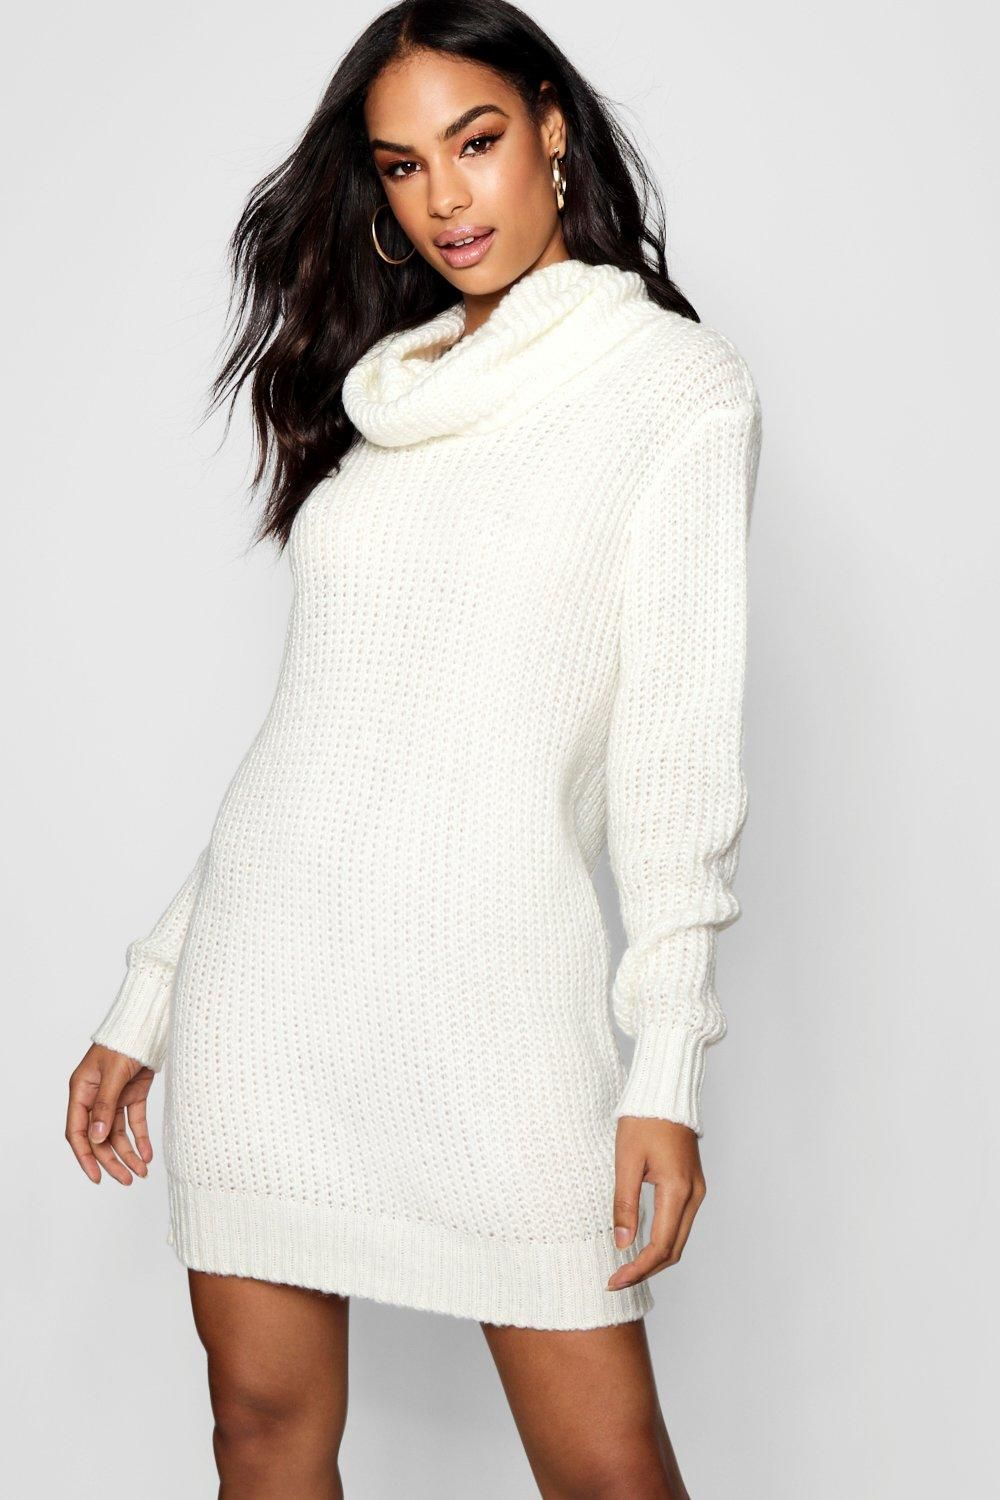 4e9b790a5e Click here to find out about the Oversized Soft Knit Cowl Neck Jumper Dress  from Boohoo, part of our latest Dresses collection ready to shop online  today!